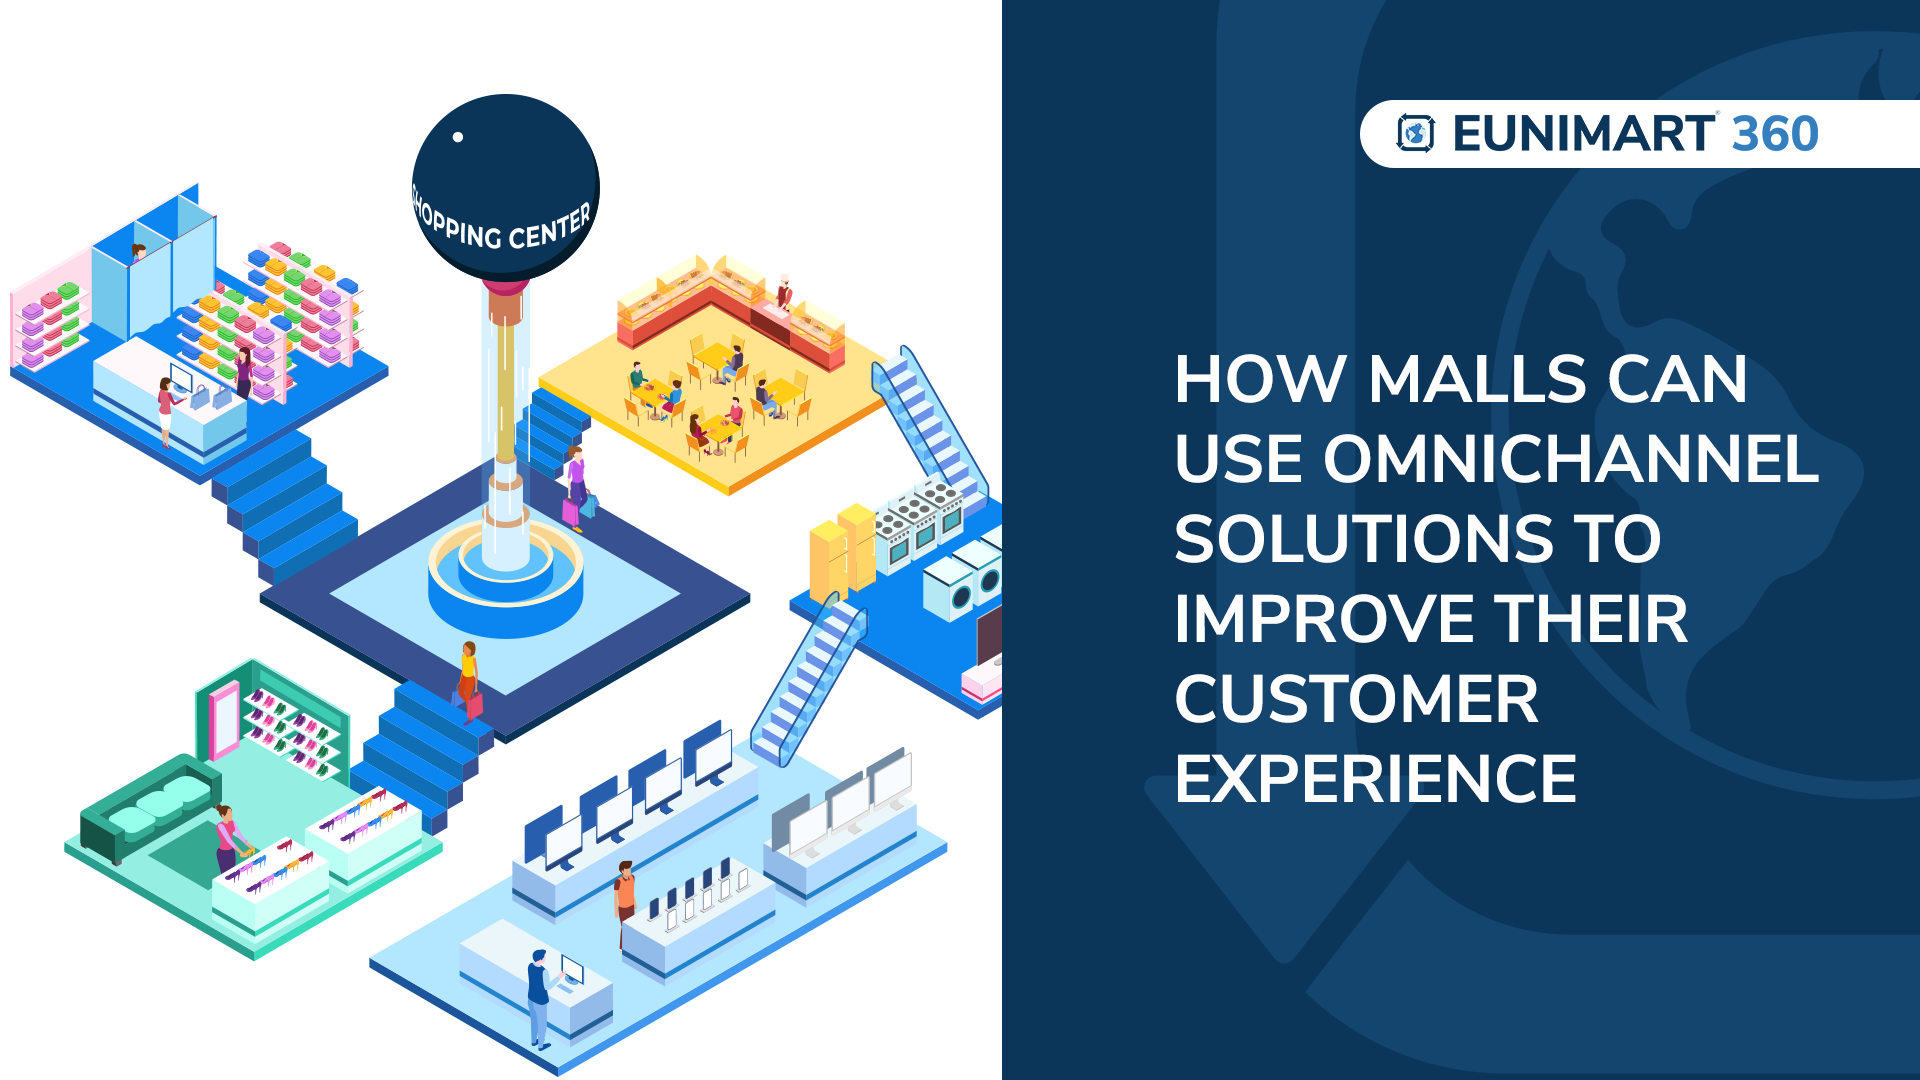 How malls can use Omnichannel Solutions to improve their Customer Experience